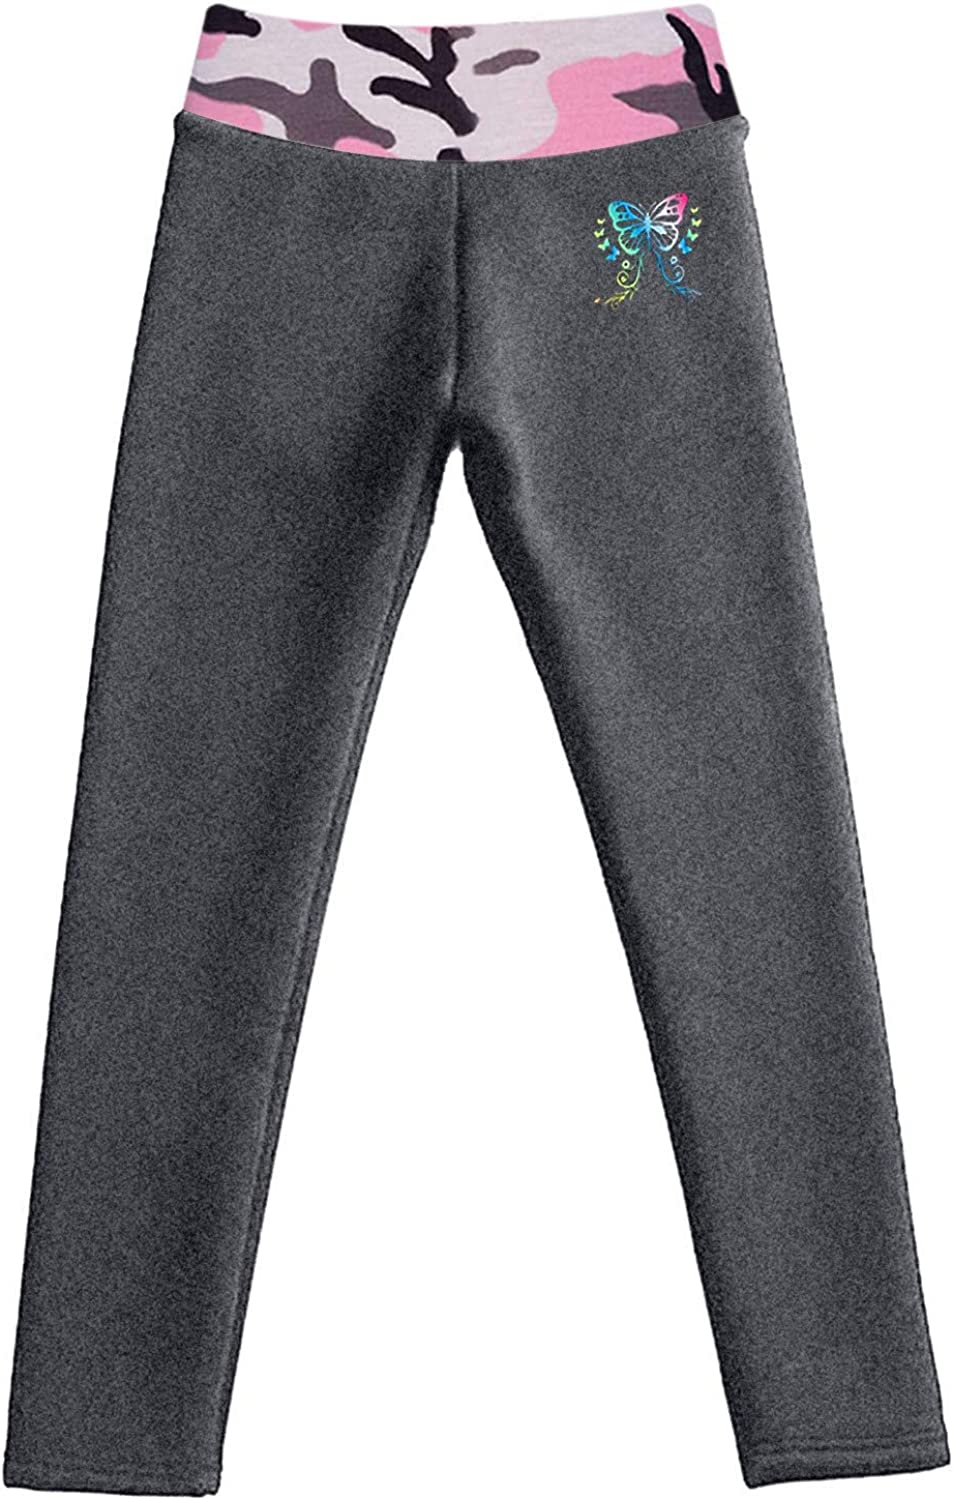 Women's Leggings Plus Velvet Warm Special price for a limited time Spasm price Printing high-Waisted